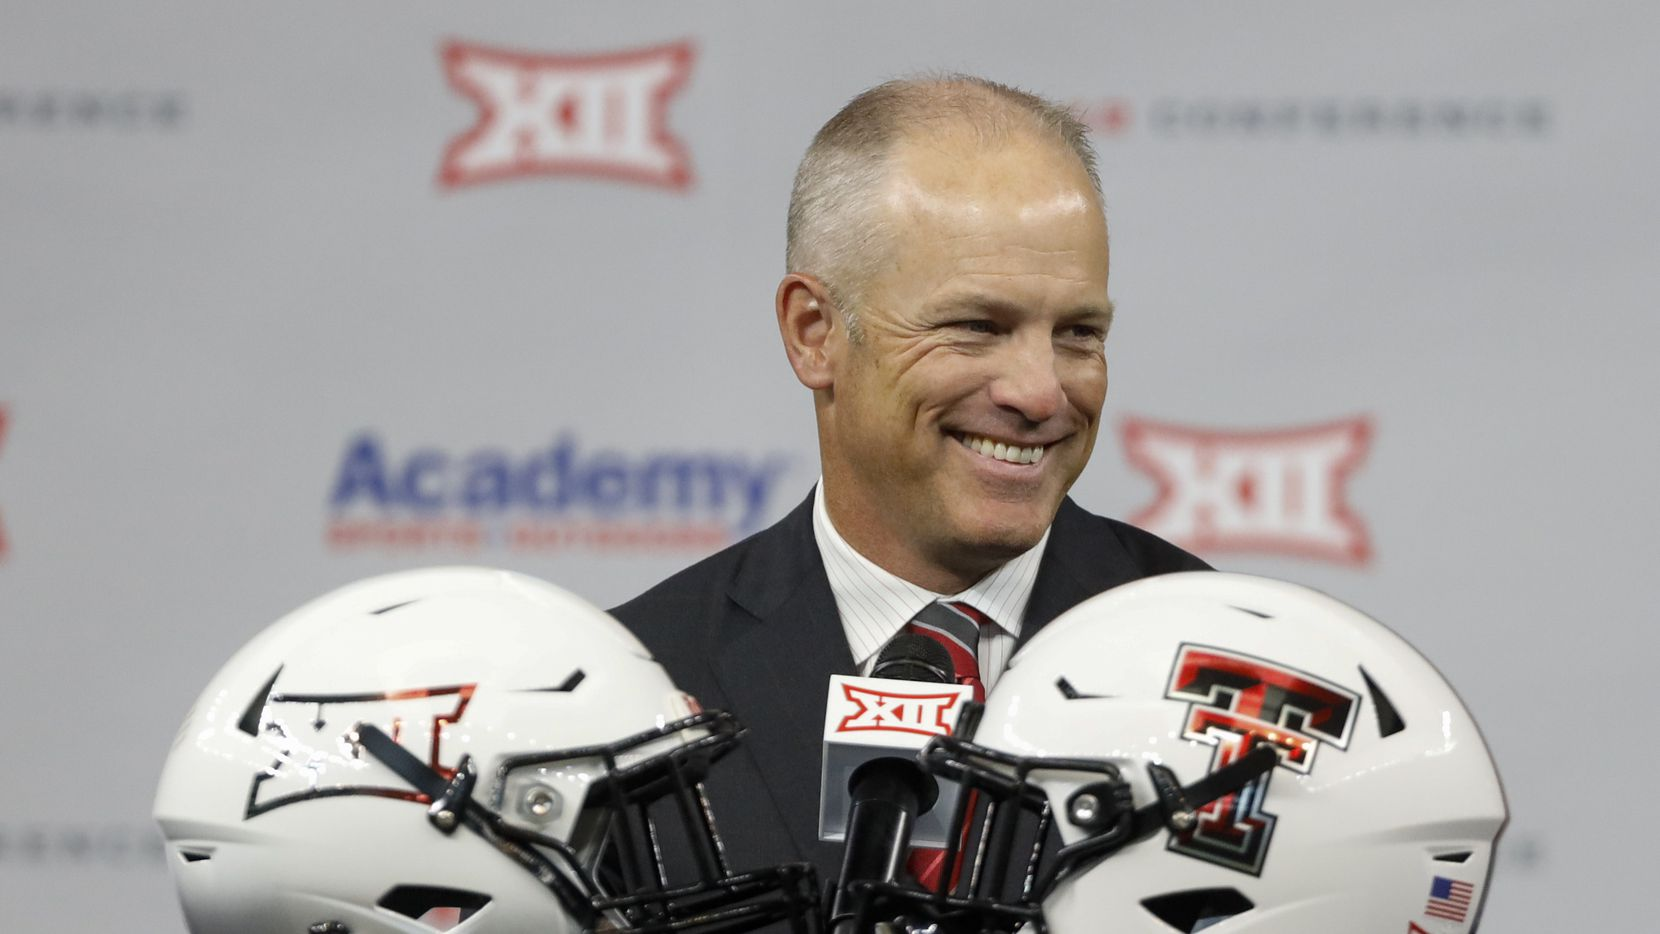 Texas Tech head football coach Matt Wells reacts during the Big 12 Conference Media Days at AT&T Stadium on Thursday, July 15, 2021, in Arlington.